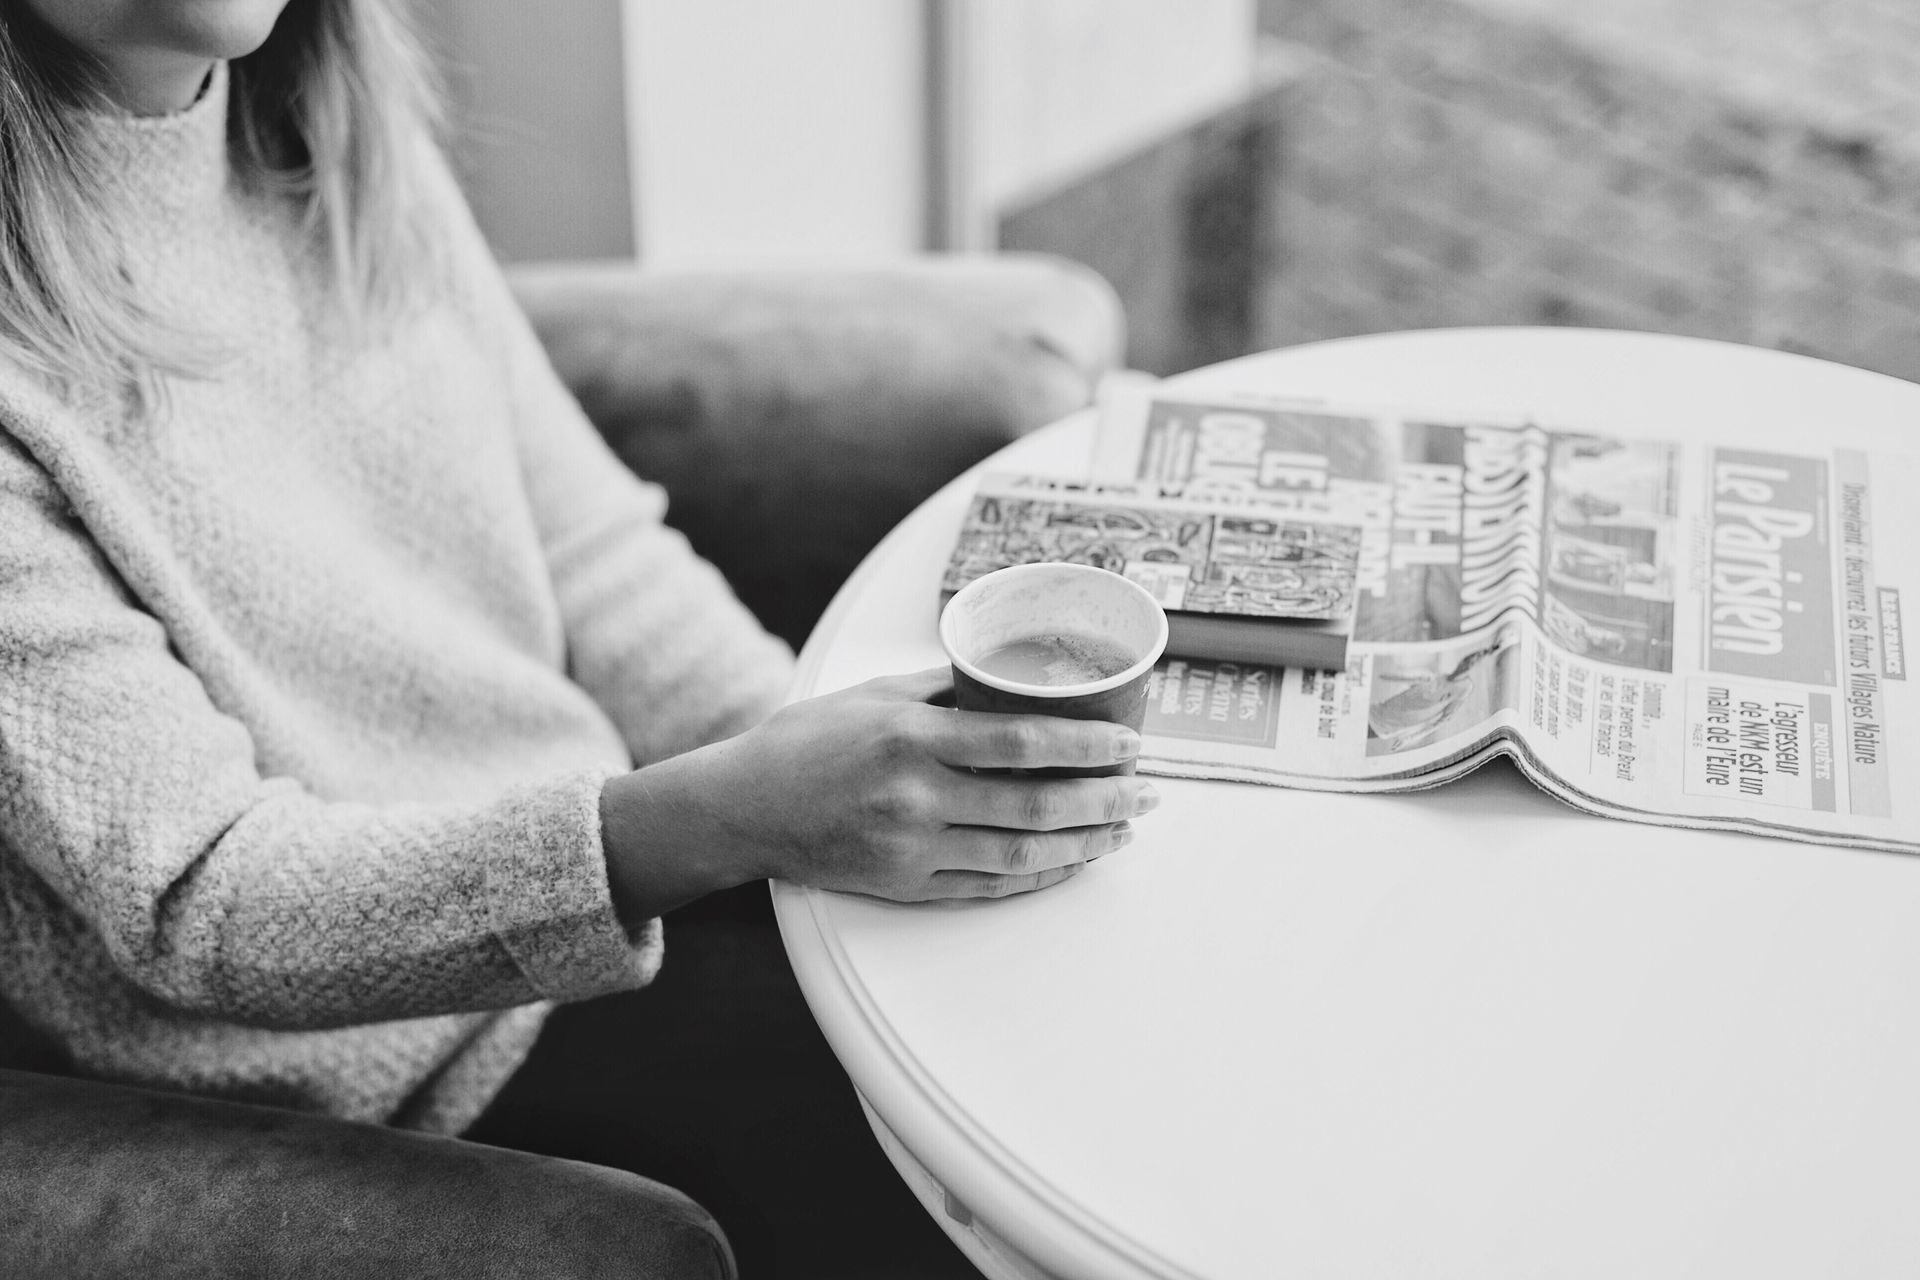 coffee break coffee cup Coffee Black & White black and white black and white blackandwhite EyeEm Selects one person real people indoors midsection Sitting holding casual clothing leisure activity women human hand lifestyles people day close-up focus on foreground young adult